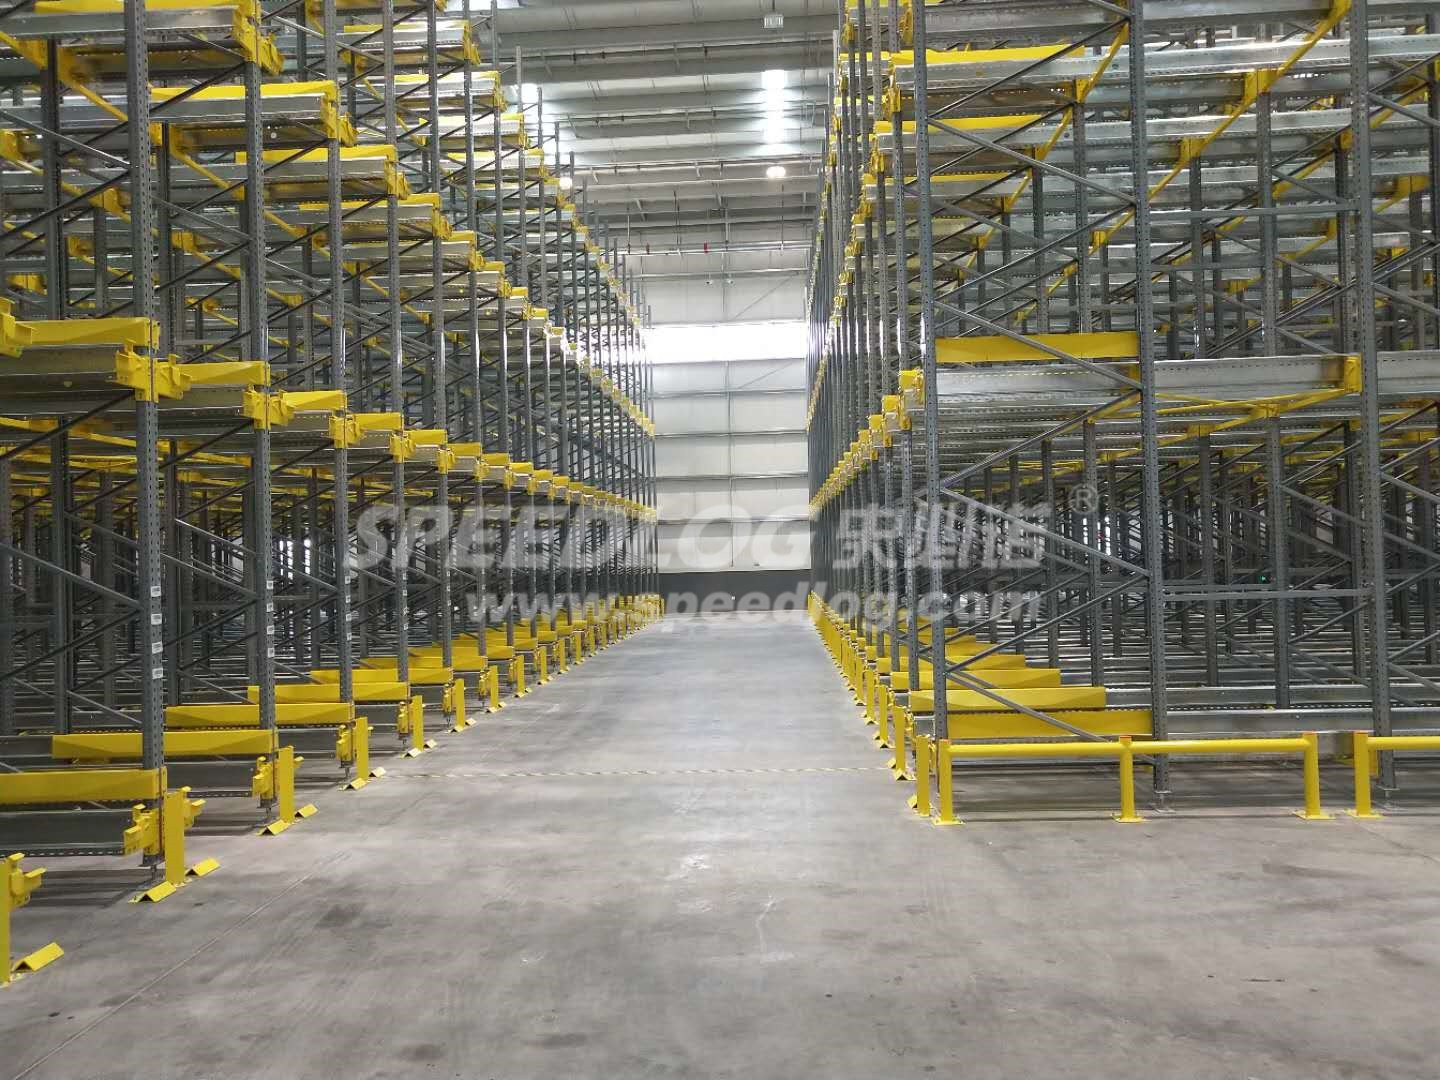 Celebrate Our Sales Of Industrial Storage Racking System To Germany